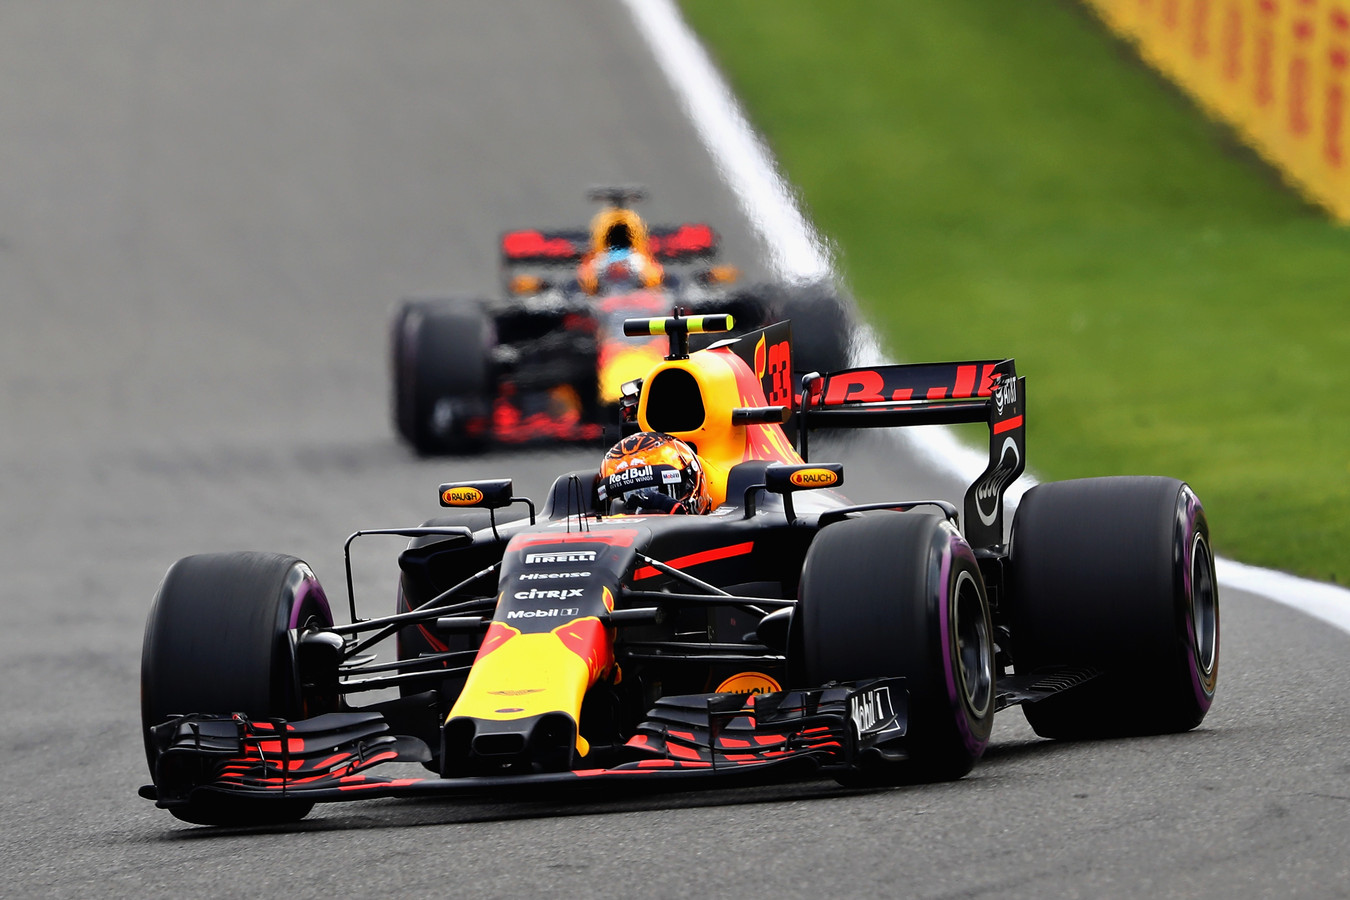 39 renault stopt vanaf 2019 samenwerking met red bull 39 foto. Black Bedroom Furniture Sets. Home Design Ideas